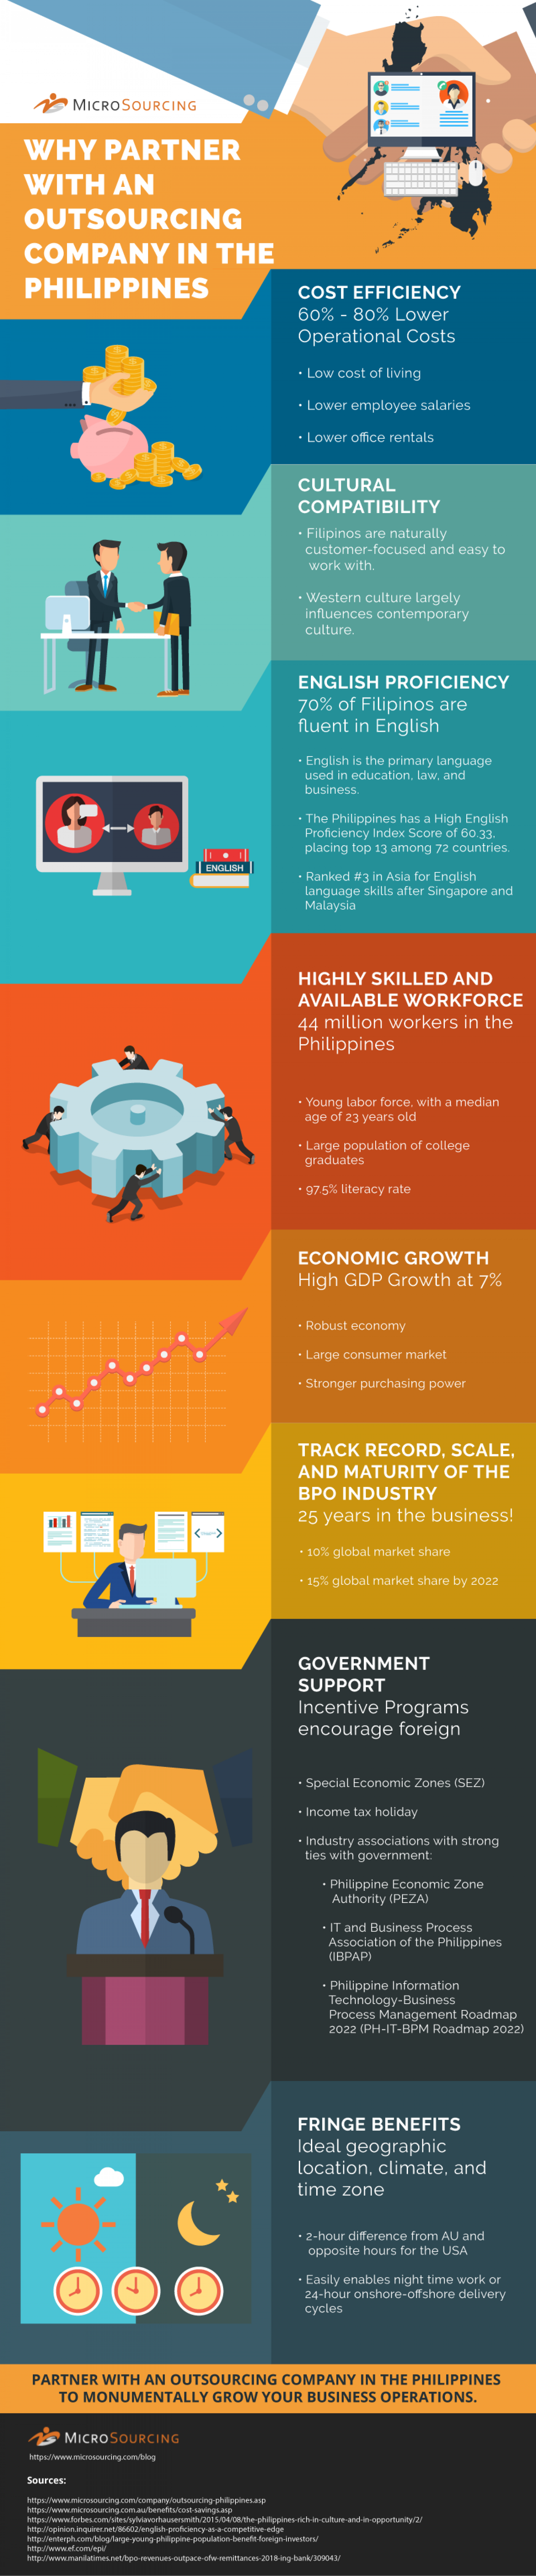 Why Partner with an Outsourcing Company in the Philippines Infographic